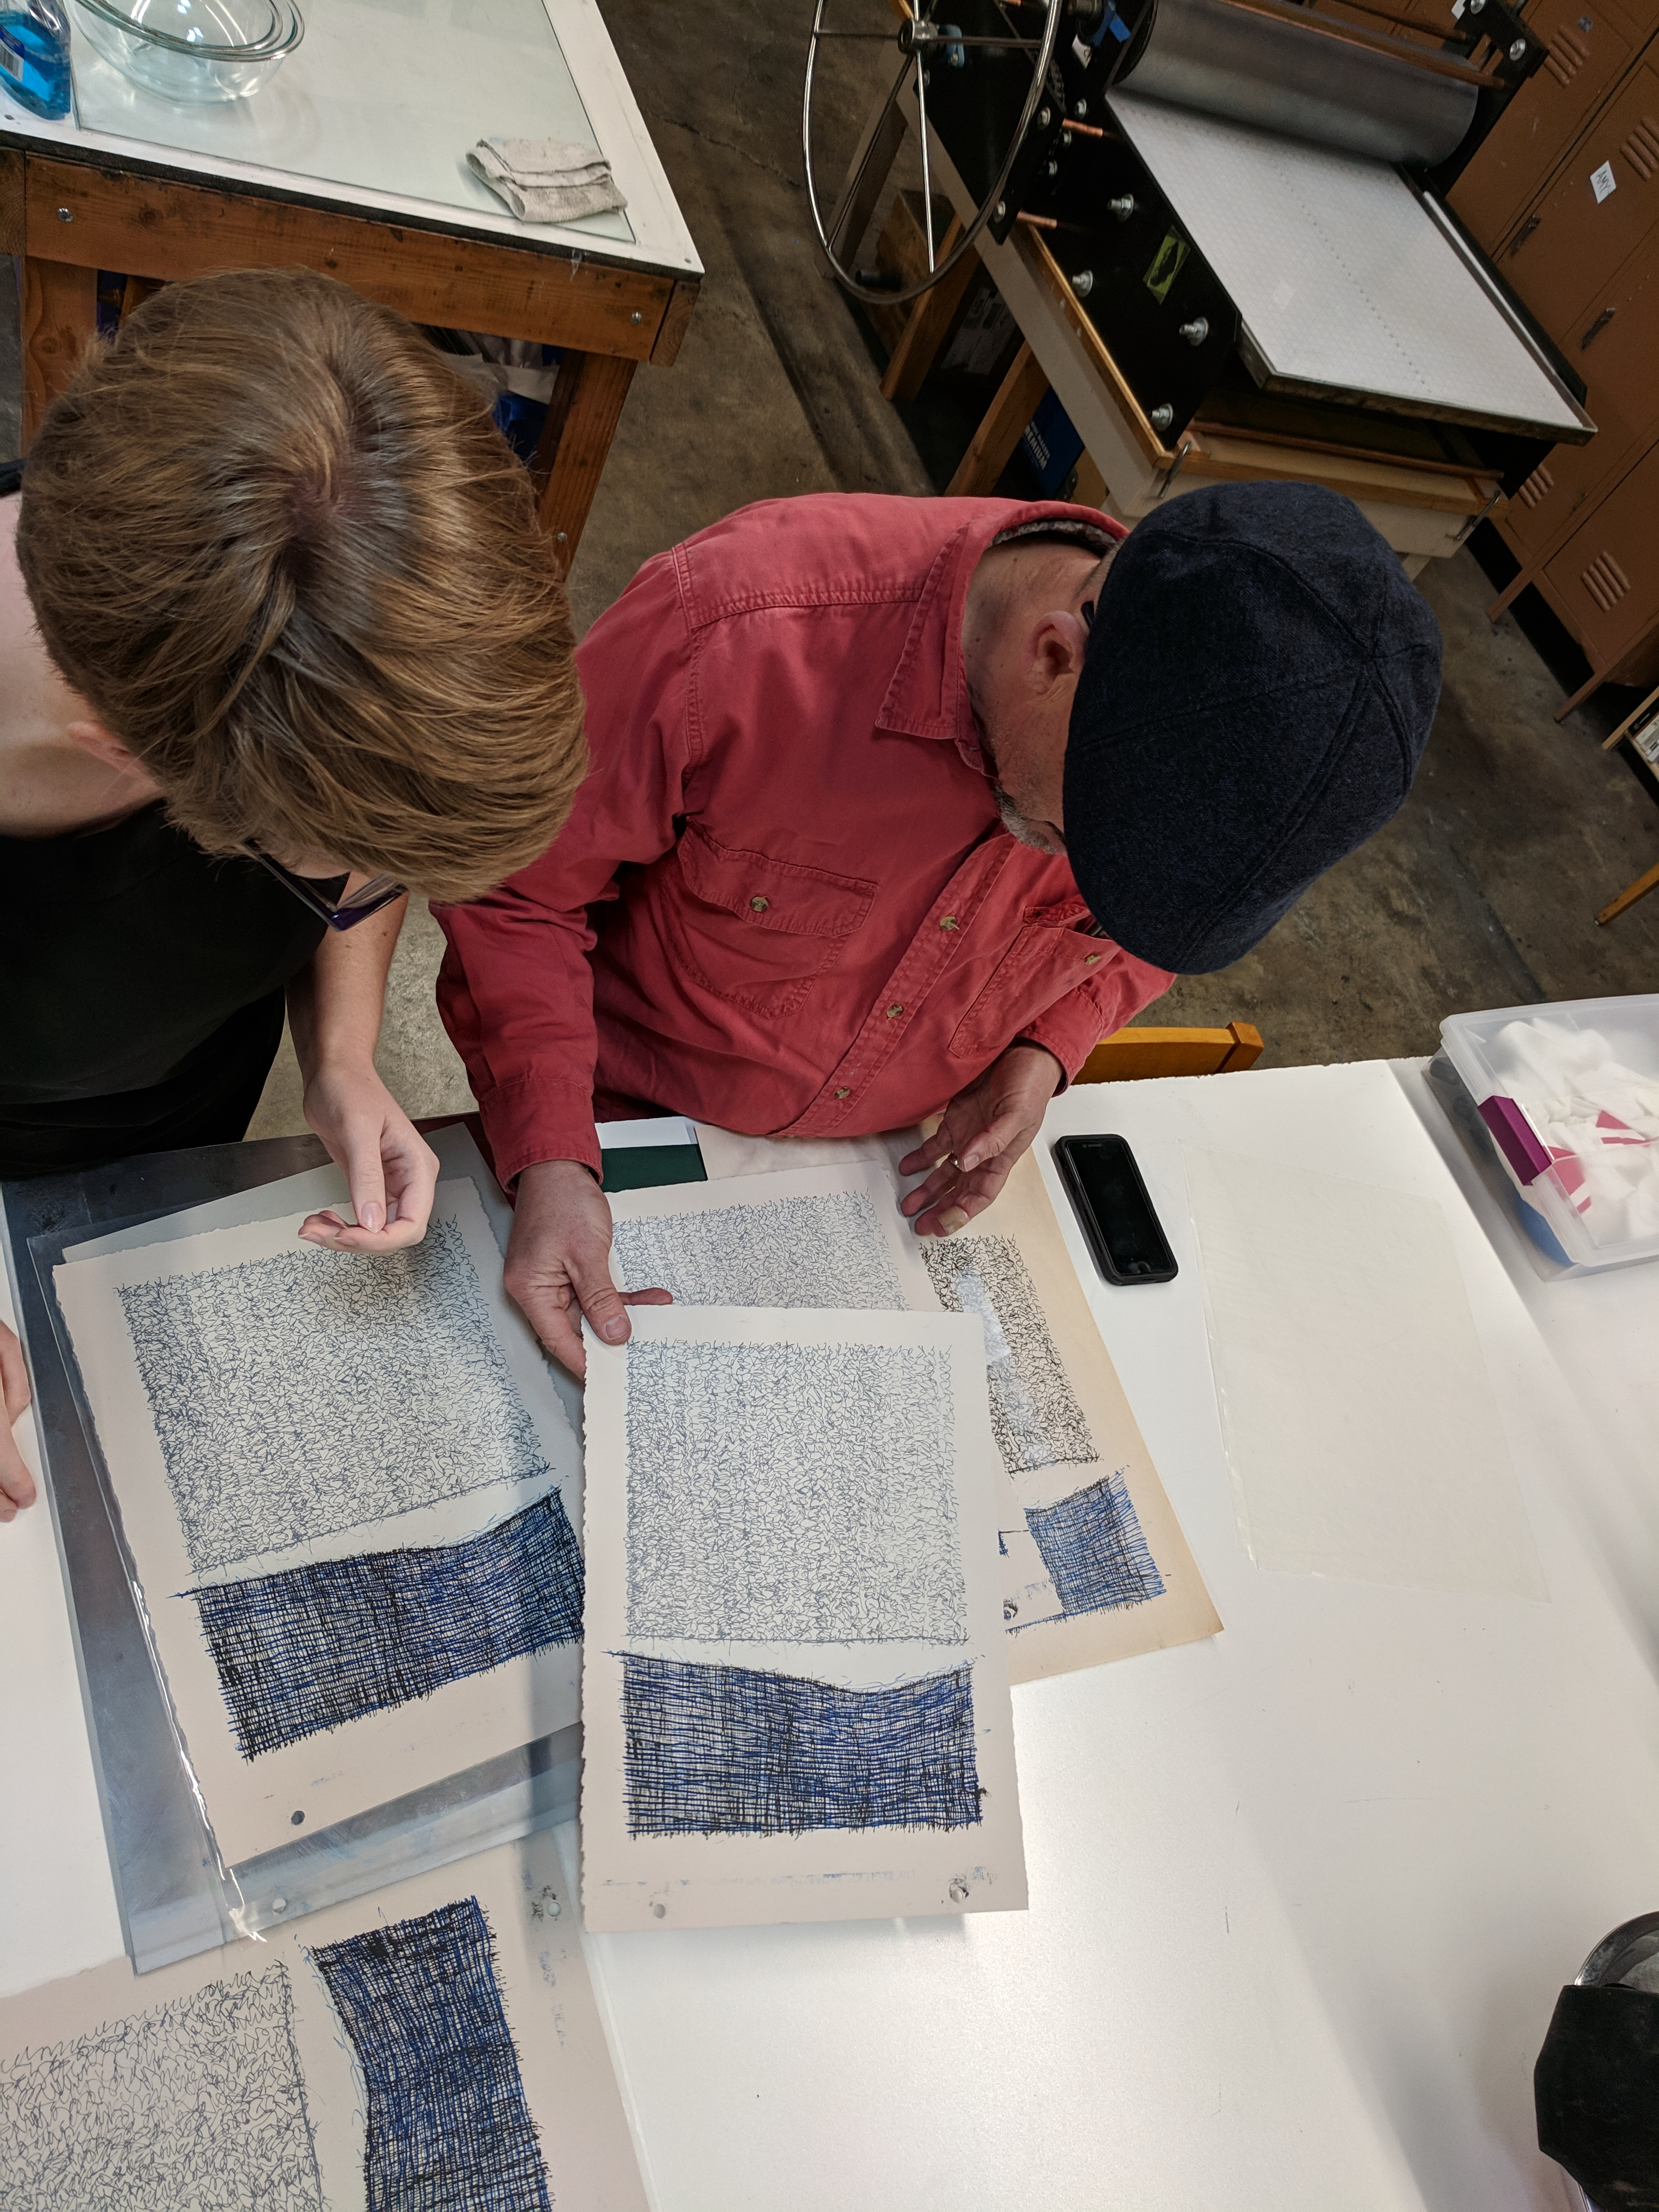 Saltgrass Printmakers – A non-profit printmaking studio and